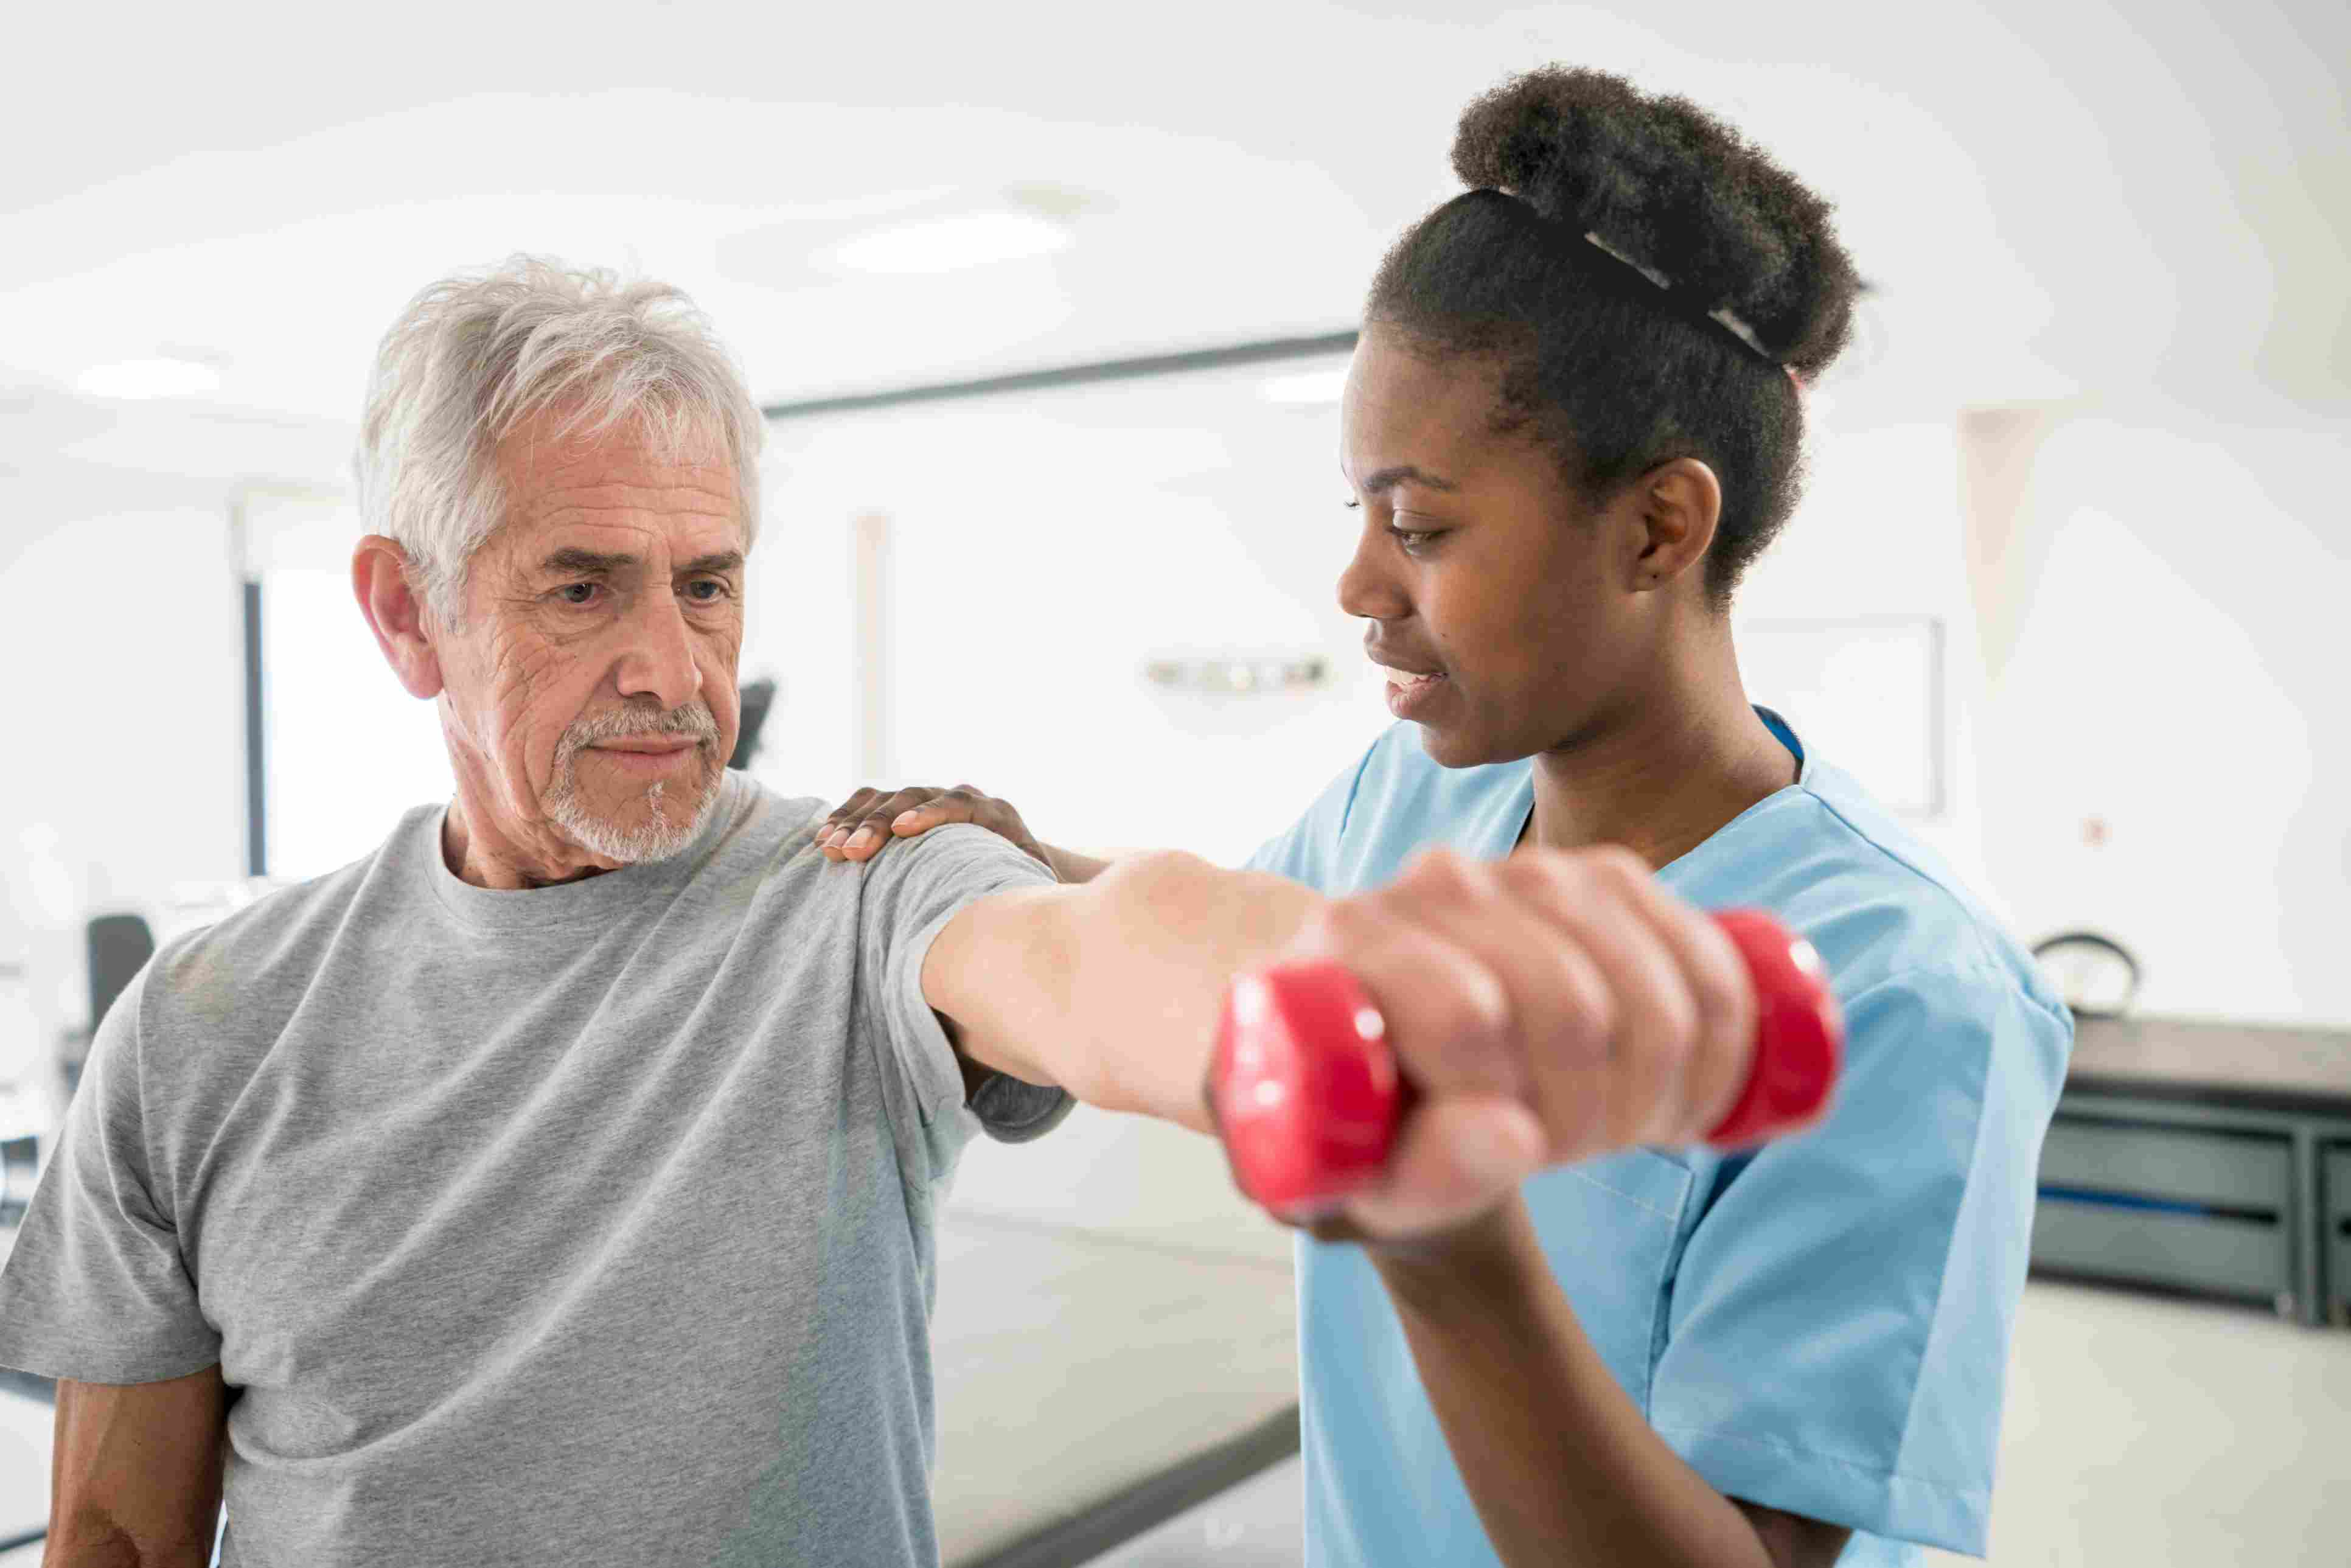 Physical therapist assistant with patient